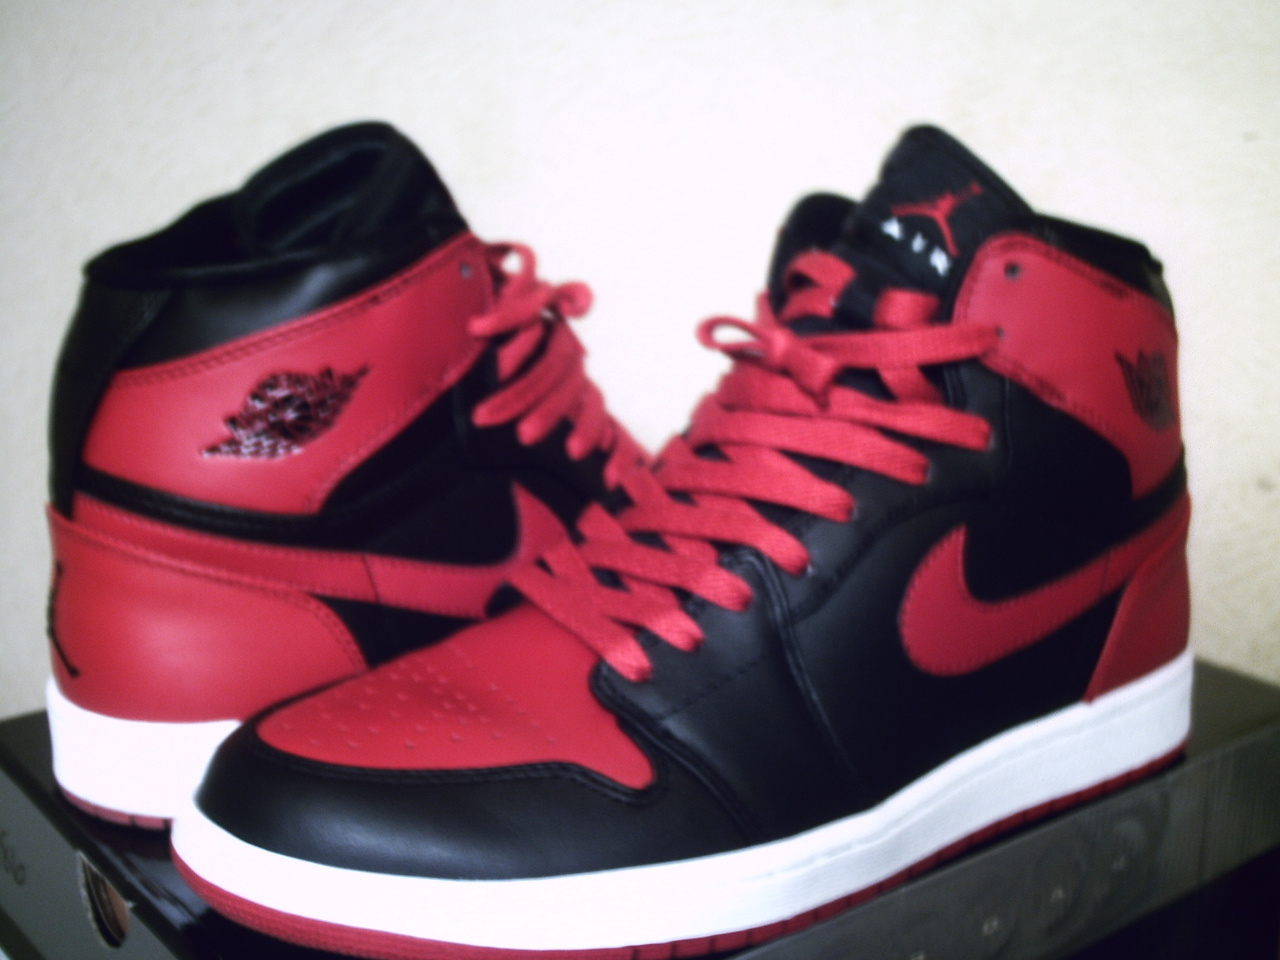 NIKE AIR JORDAN 1 HIGH STRAP 「ブルズカラー 」 black_varsity red-white 342132 061